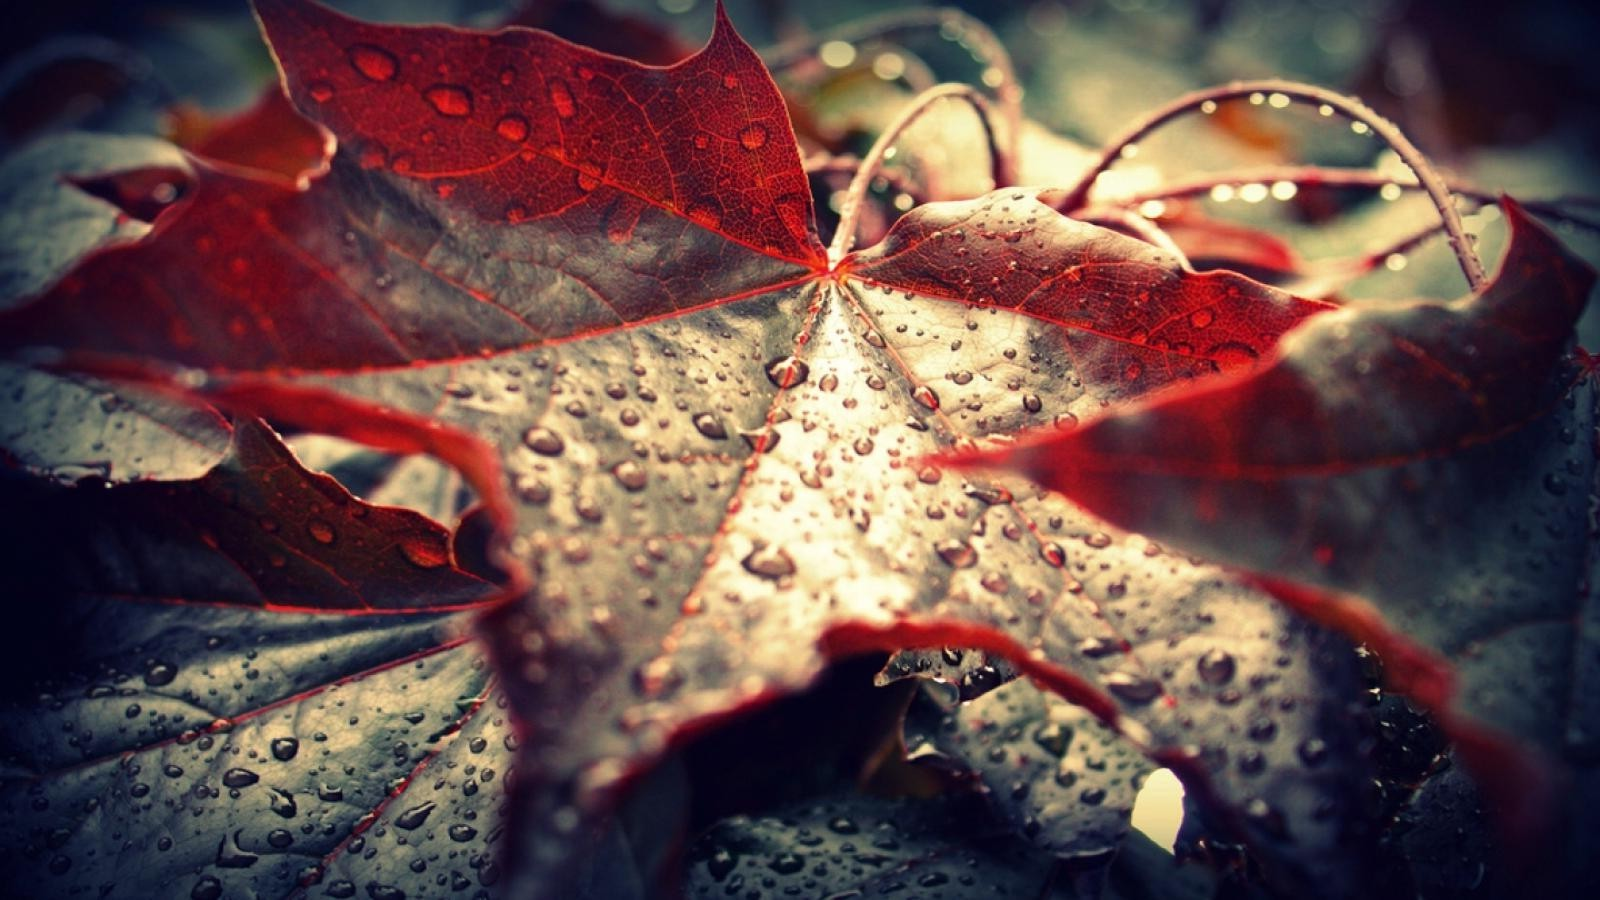 Full Screen Desktop Fall Leaves Wallpaper Leaves Dew Nature Maple Leaves Macro Water Drops